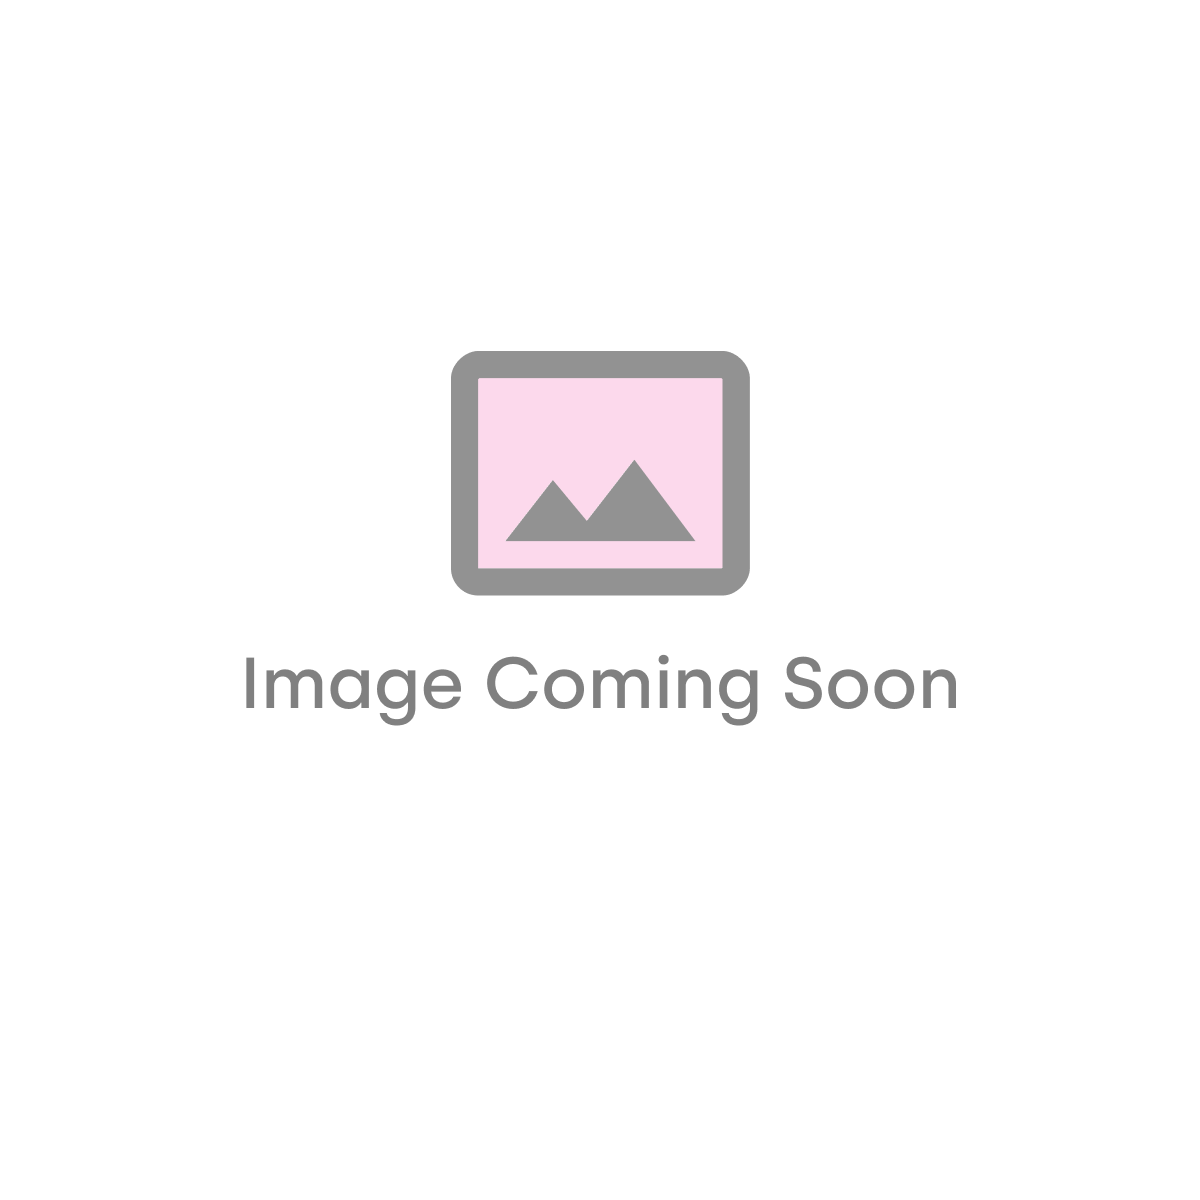 Alhambra Nuance Wall Panelling & Worktop - 11803